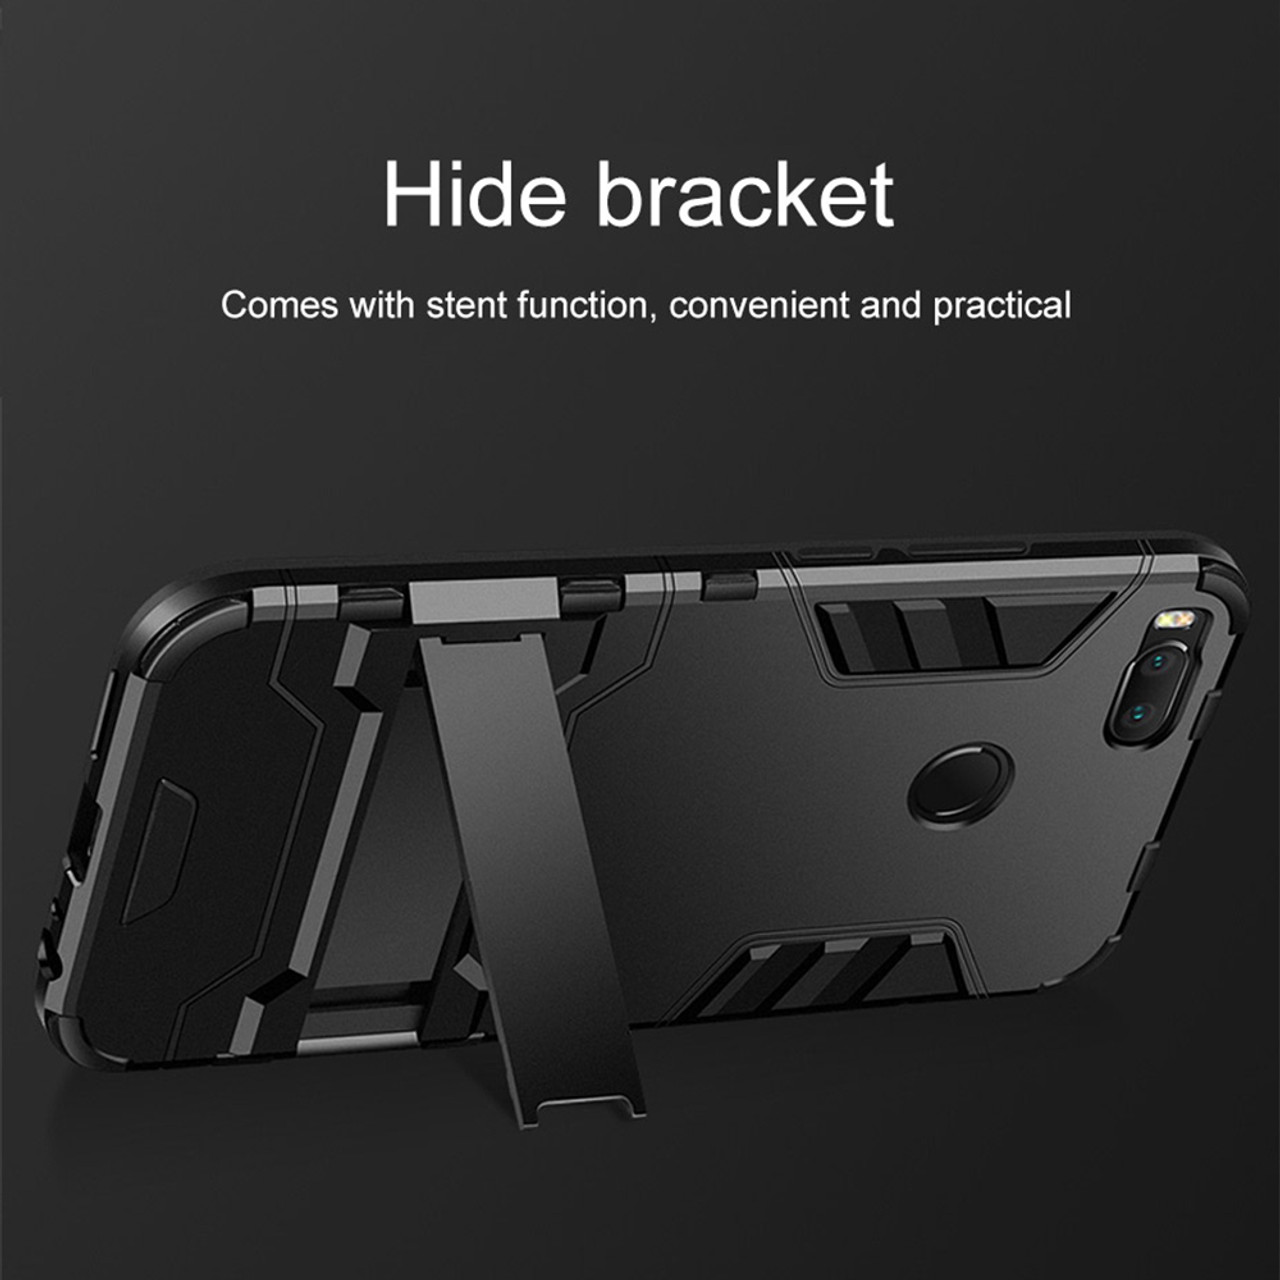 For Xiaomi Mi A1 5x Case Aubusen Hybrid Shockproof Hard Iron Man Brushed Carbon Armor Soft Mi5s 5s Defender Silicone Cover